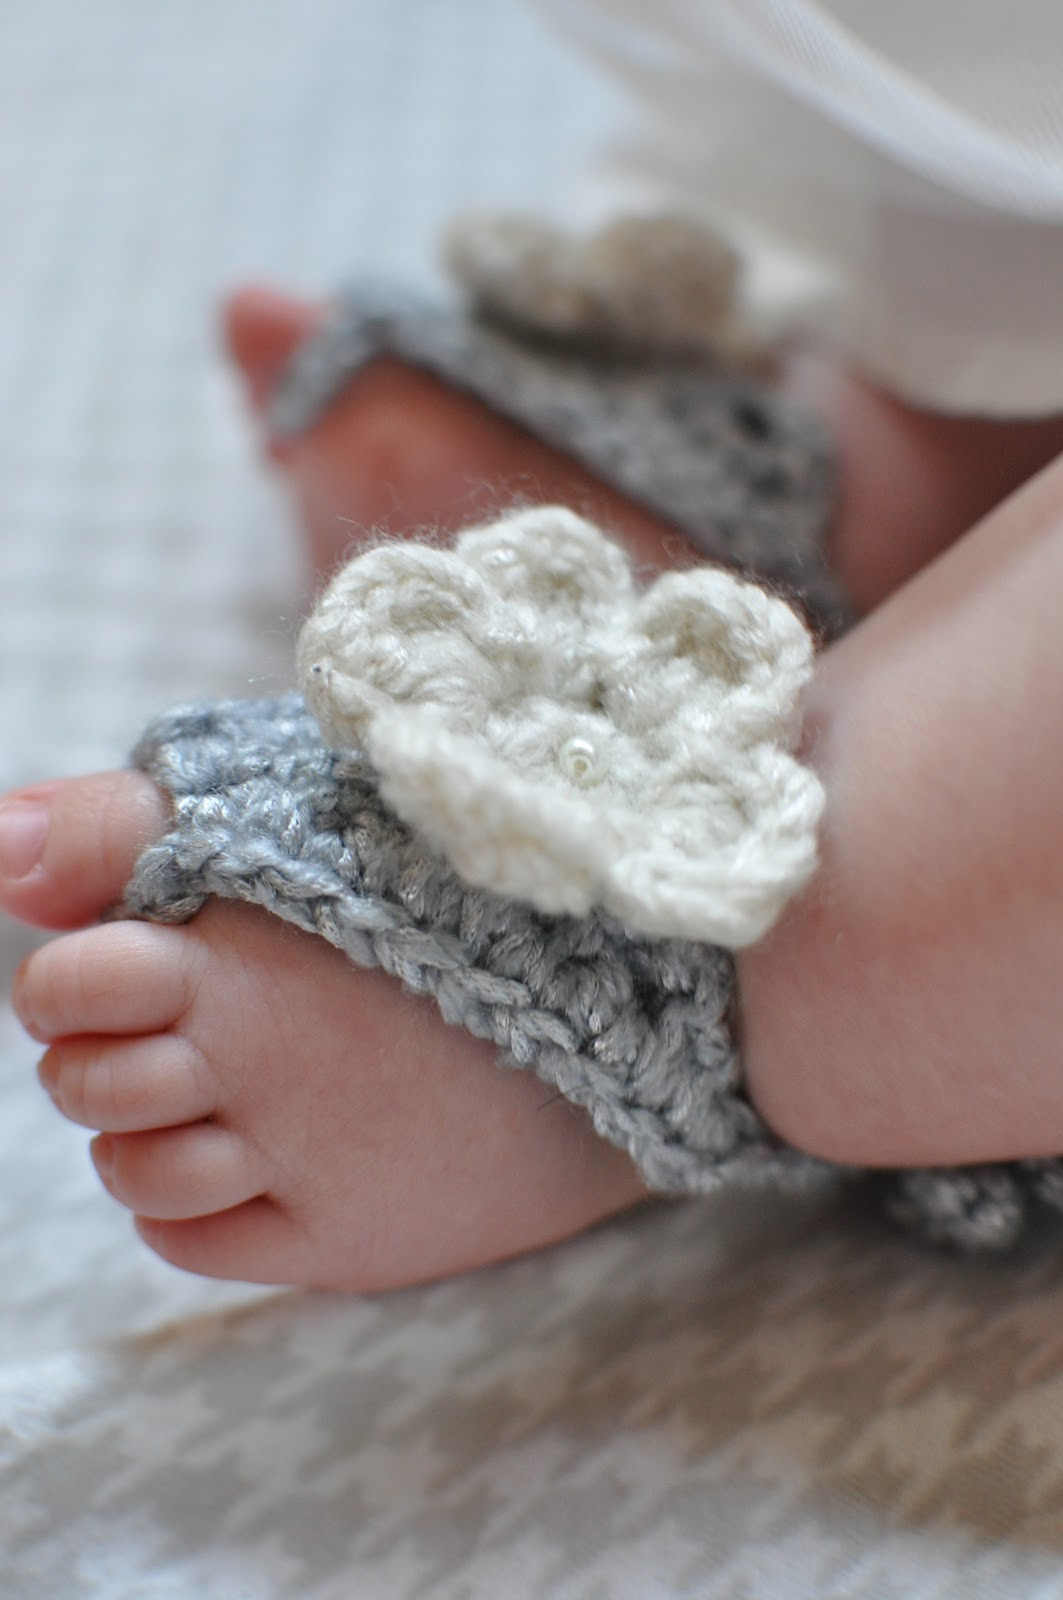 Crochet Baby Sandals Pattern Best Of 60 Adorable and Free Crochet Baby Sandals Patterns Of Perfect 43 Photos Crochet Baby Sandals Pattern